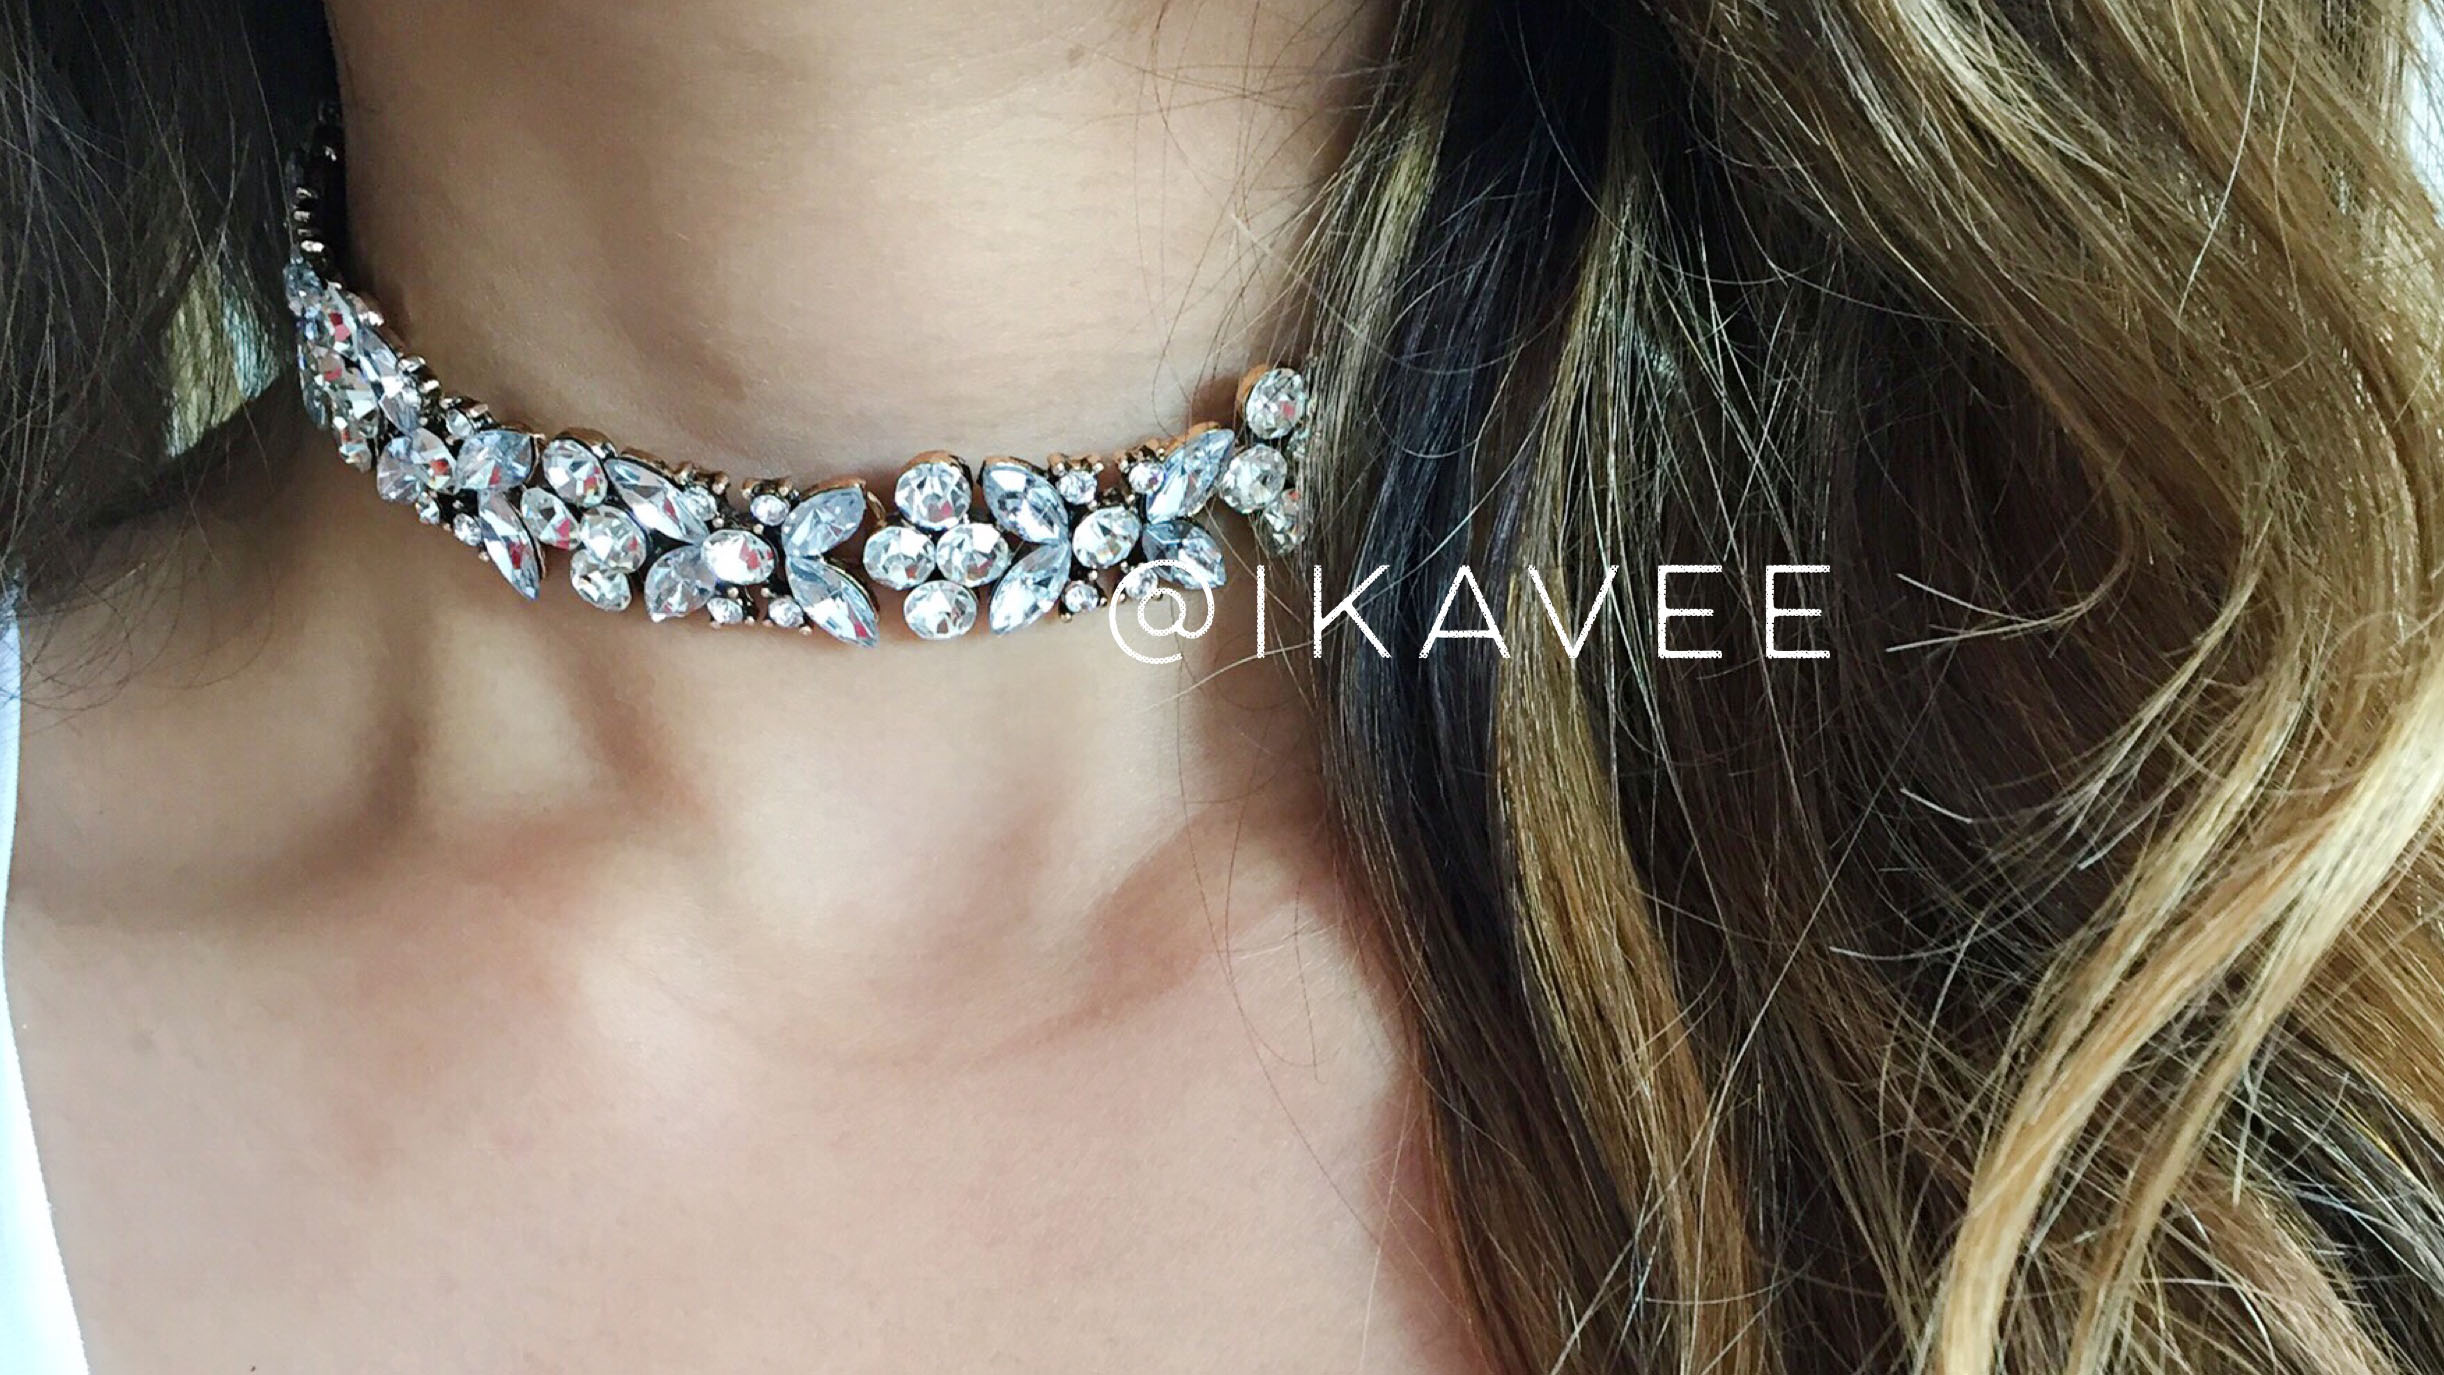 Ikavee neckless